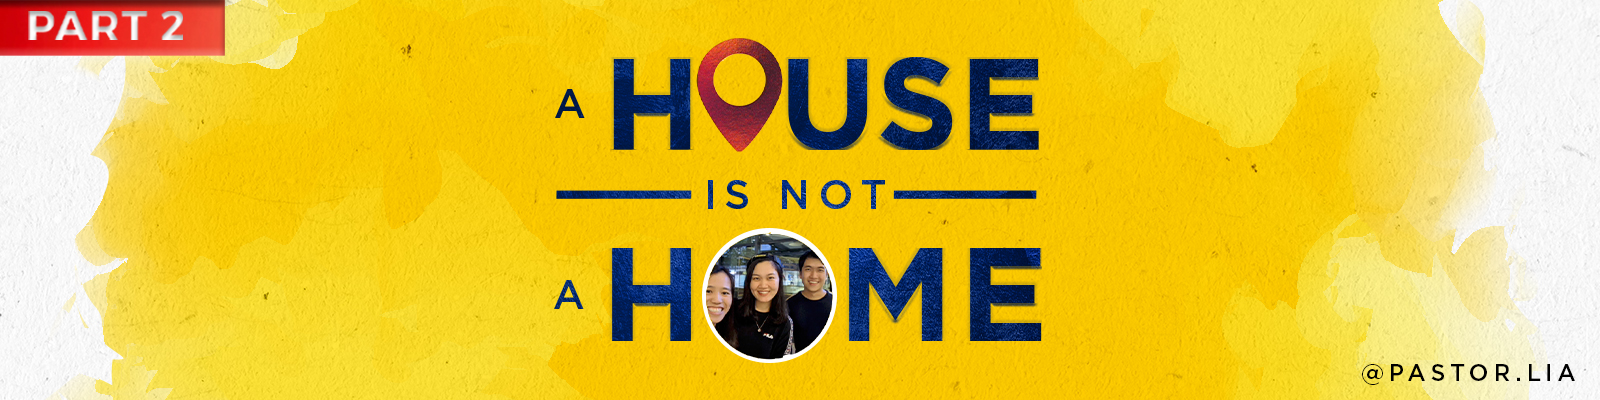 A House Is Not A Home Part 2